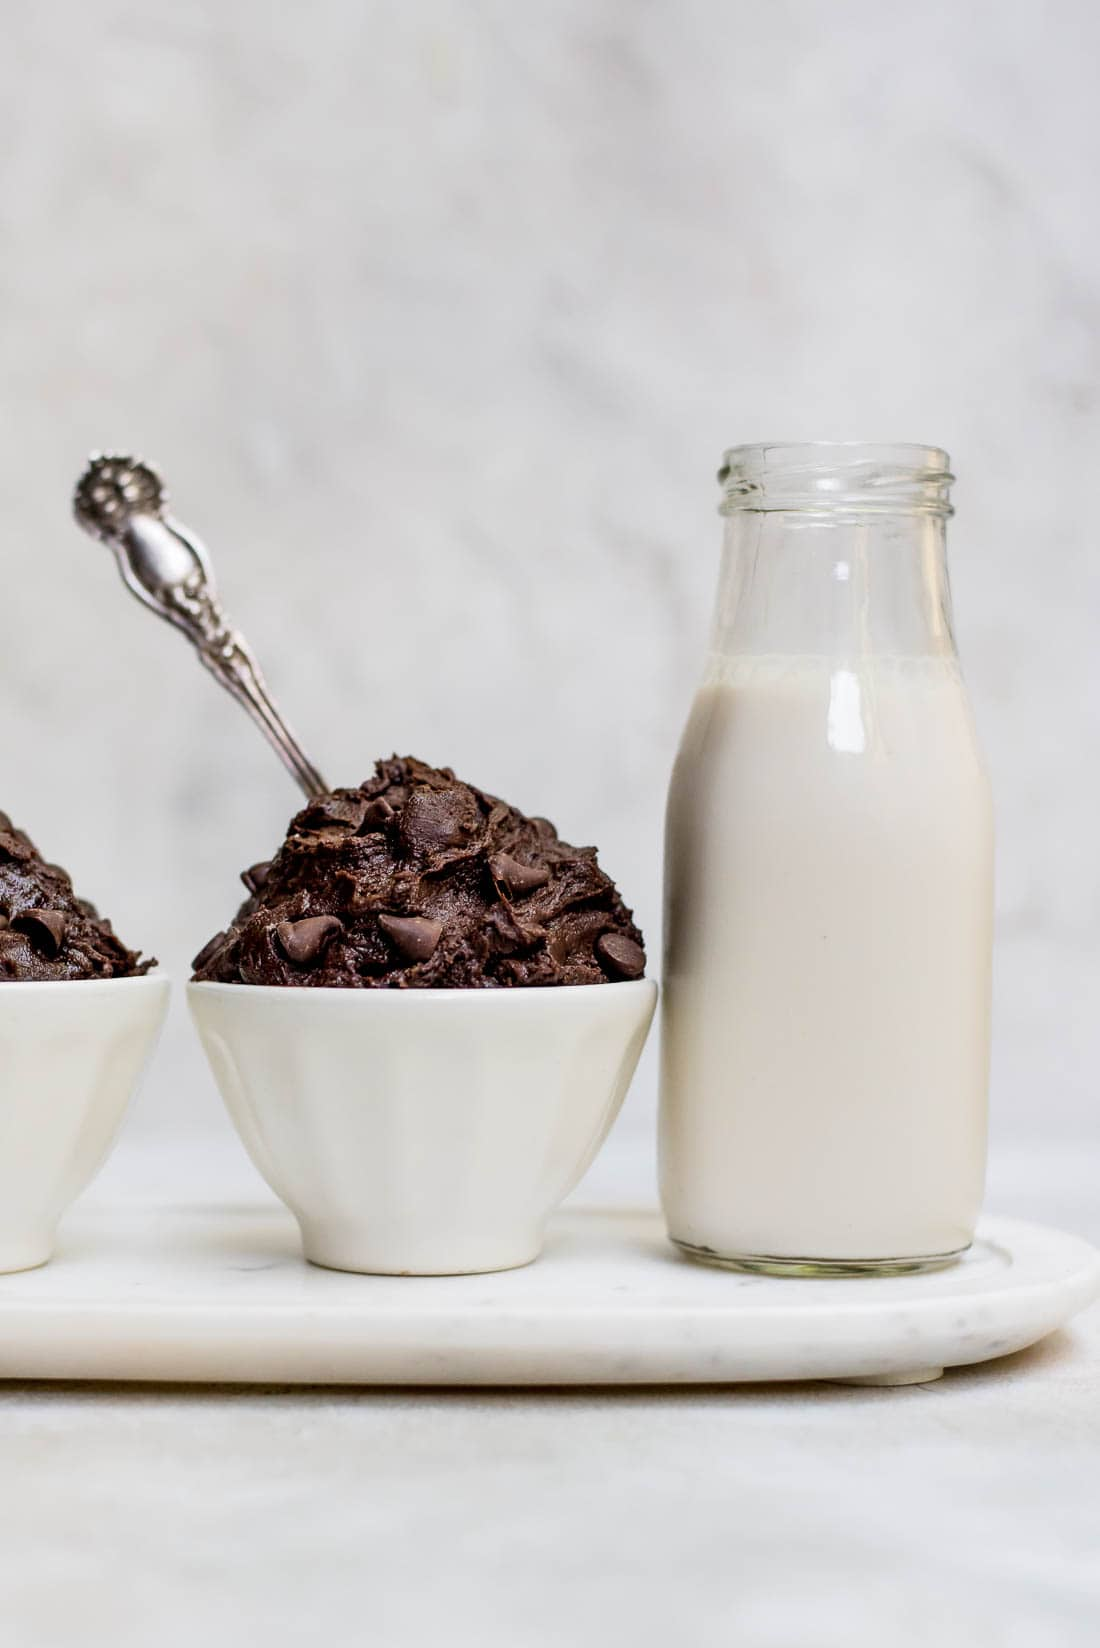 edible brownie batter in white bowl next to milk bottle